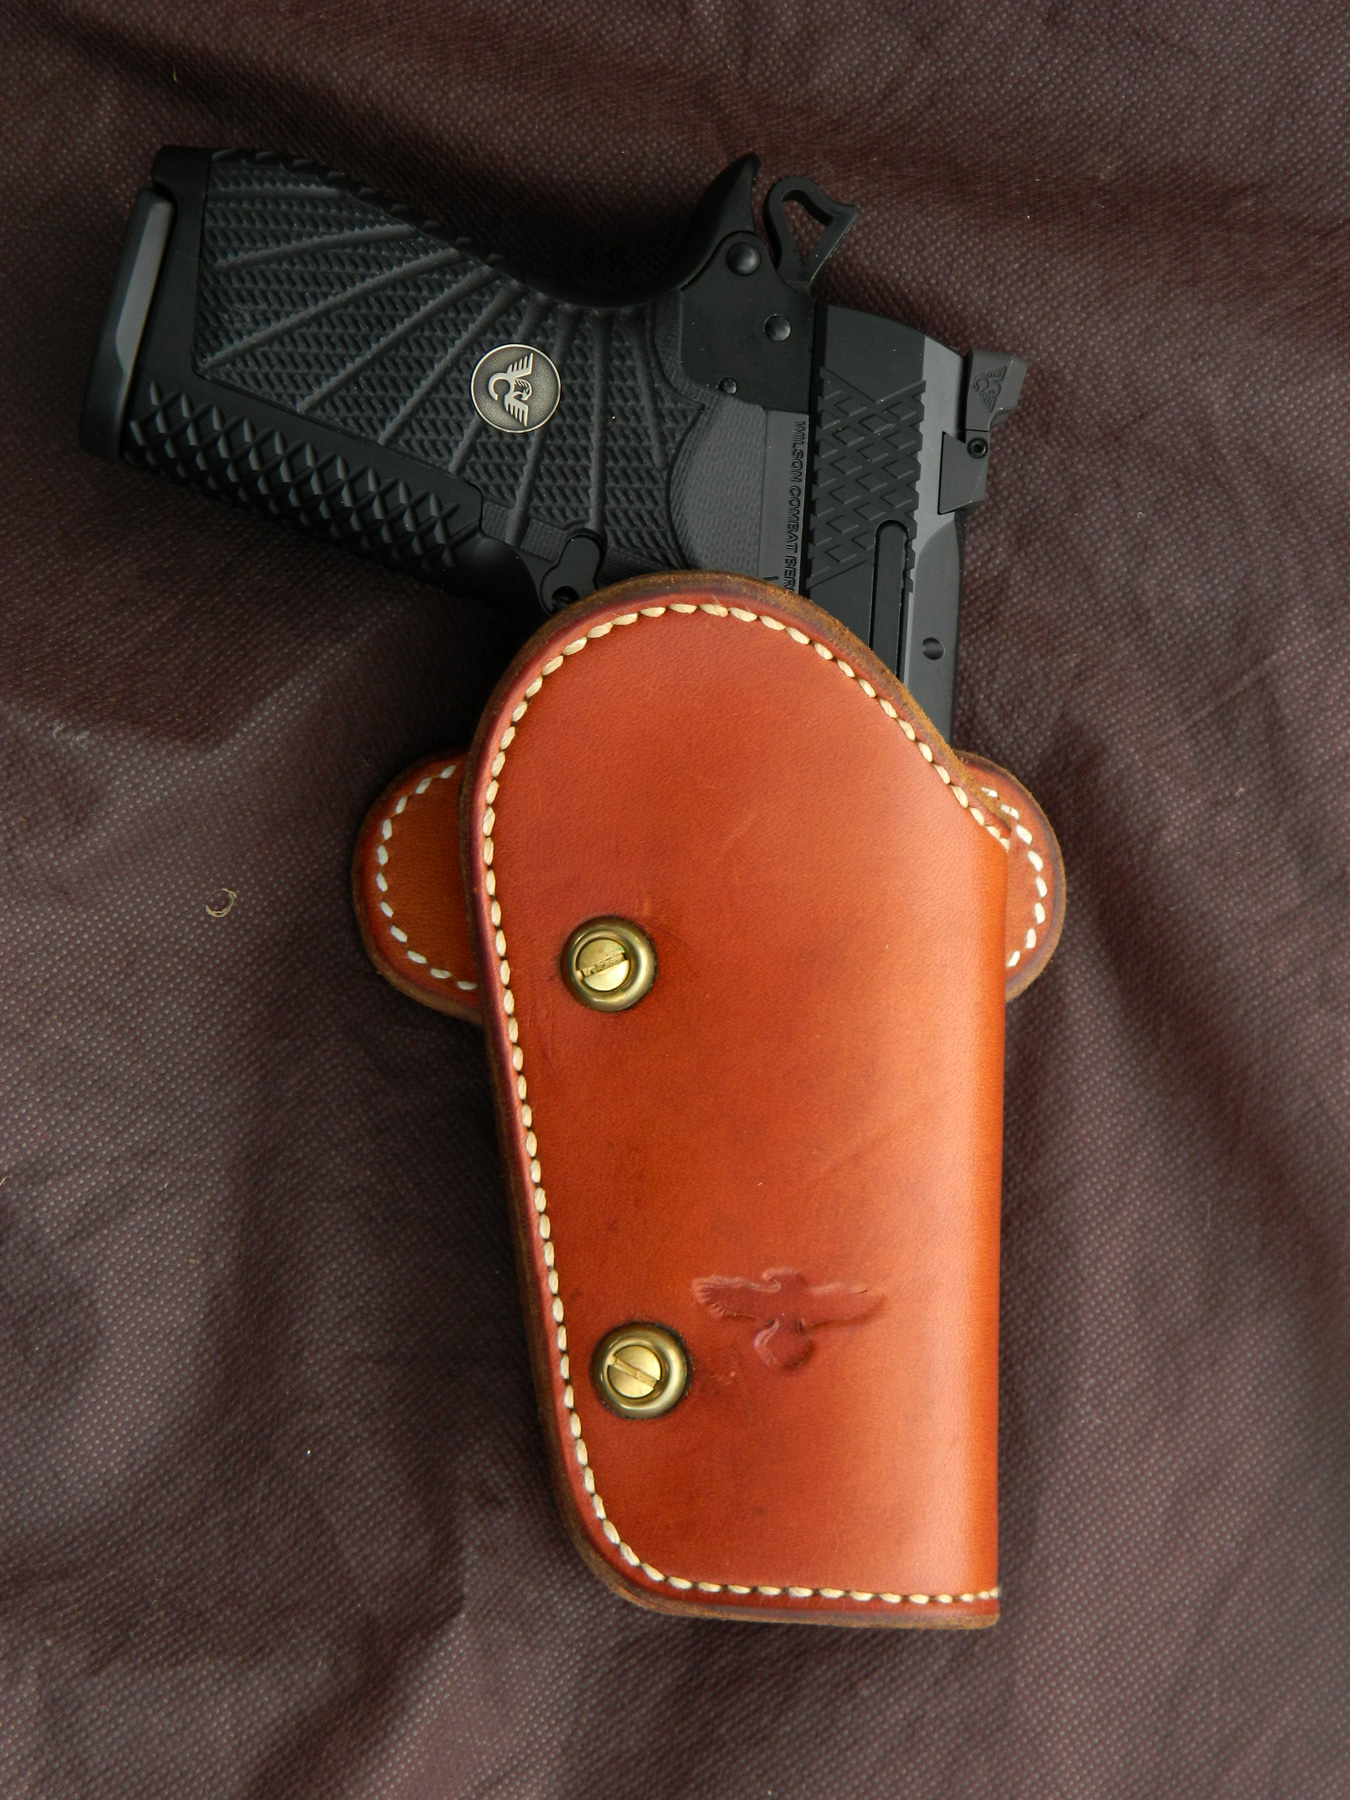 Wilson Combat EDC X9 in a brown leather holster